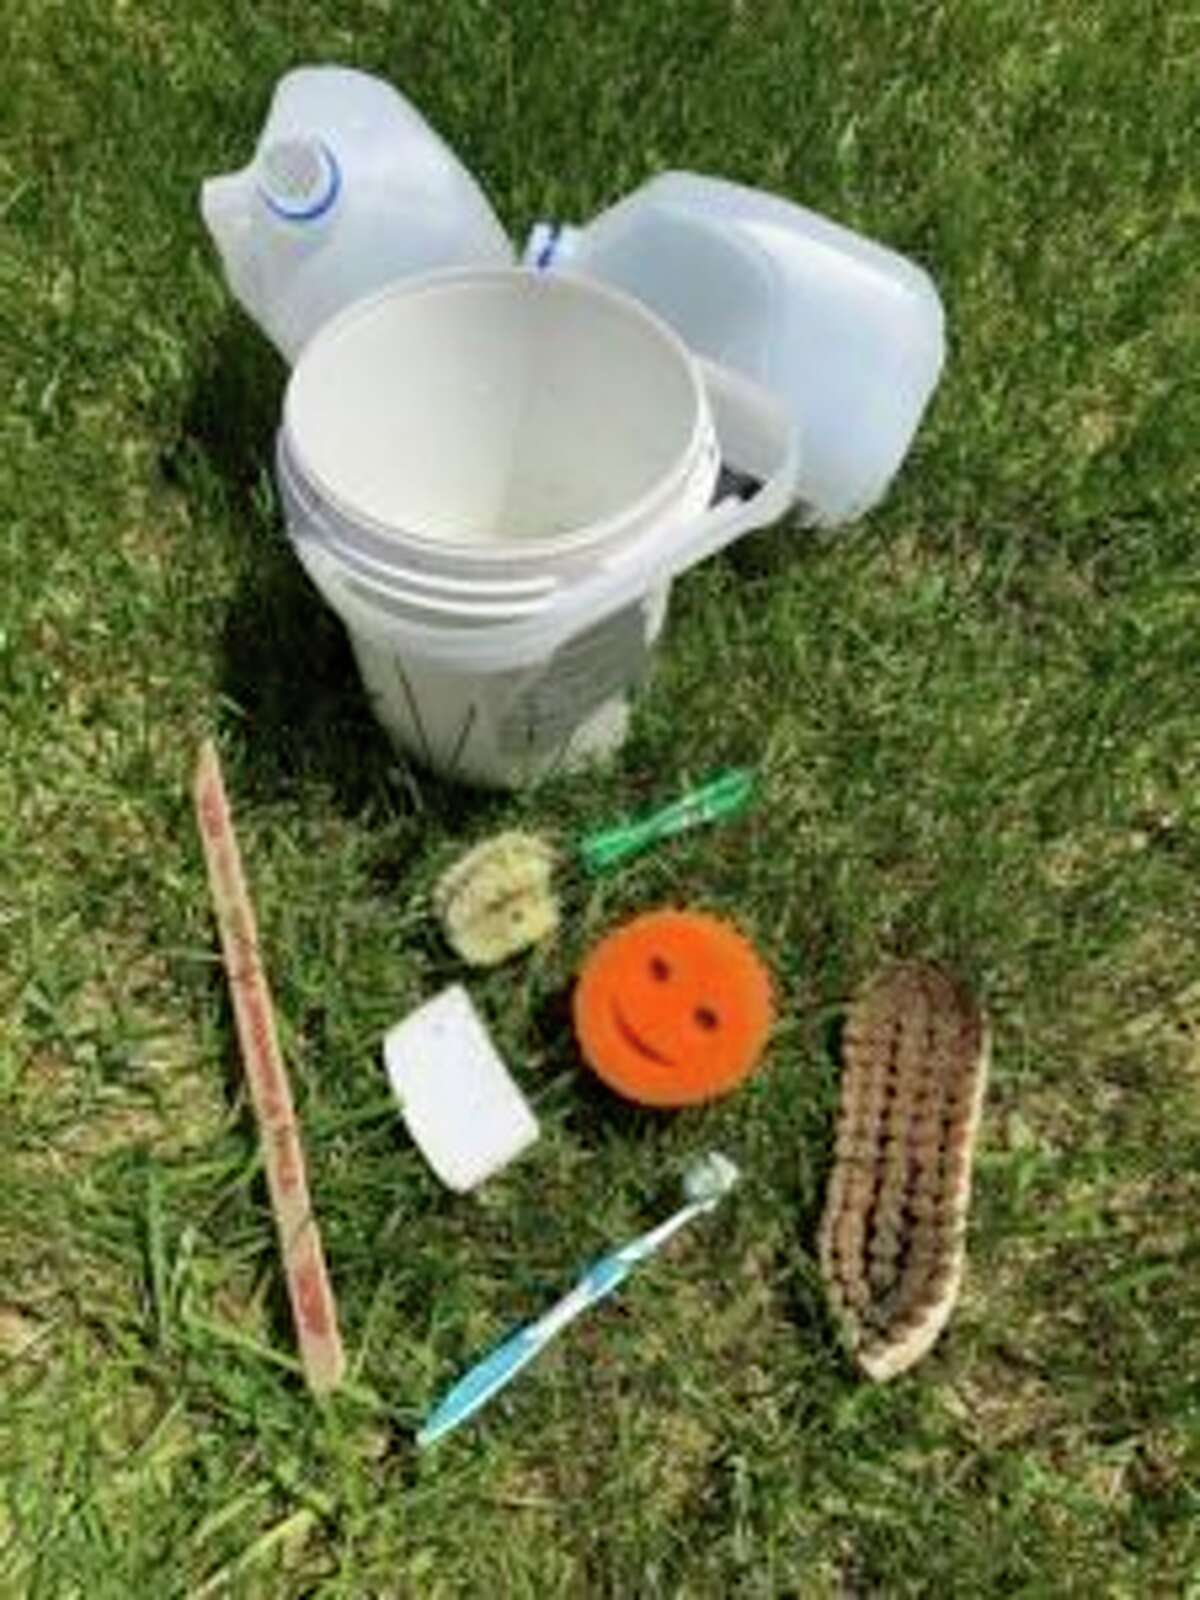 """Participants in a grave cleaning class held by the Benzie Area Historical Society will be asked to bring a grave cleaning """"kit"""" consisting of common household items. (Courtesy Photo)"""